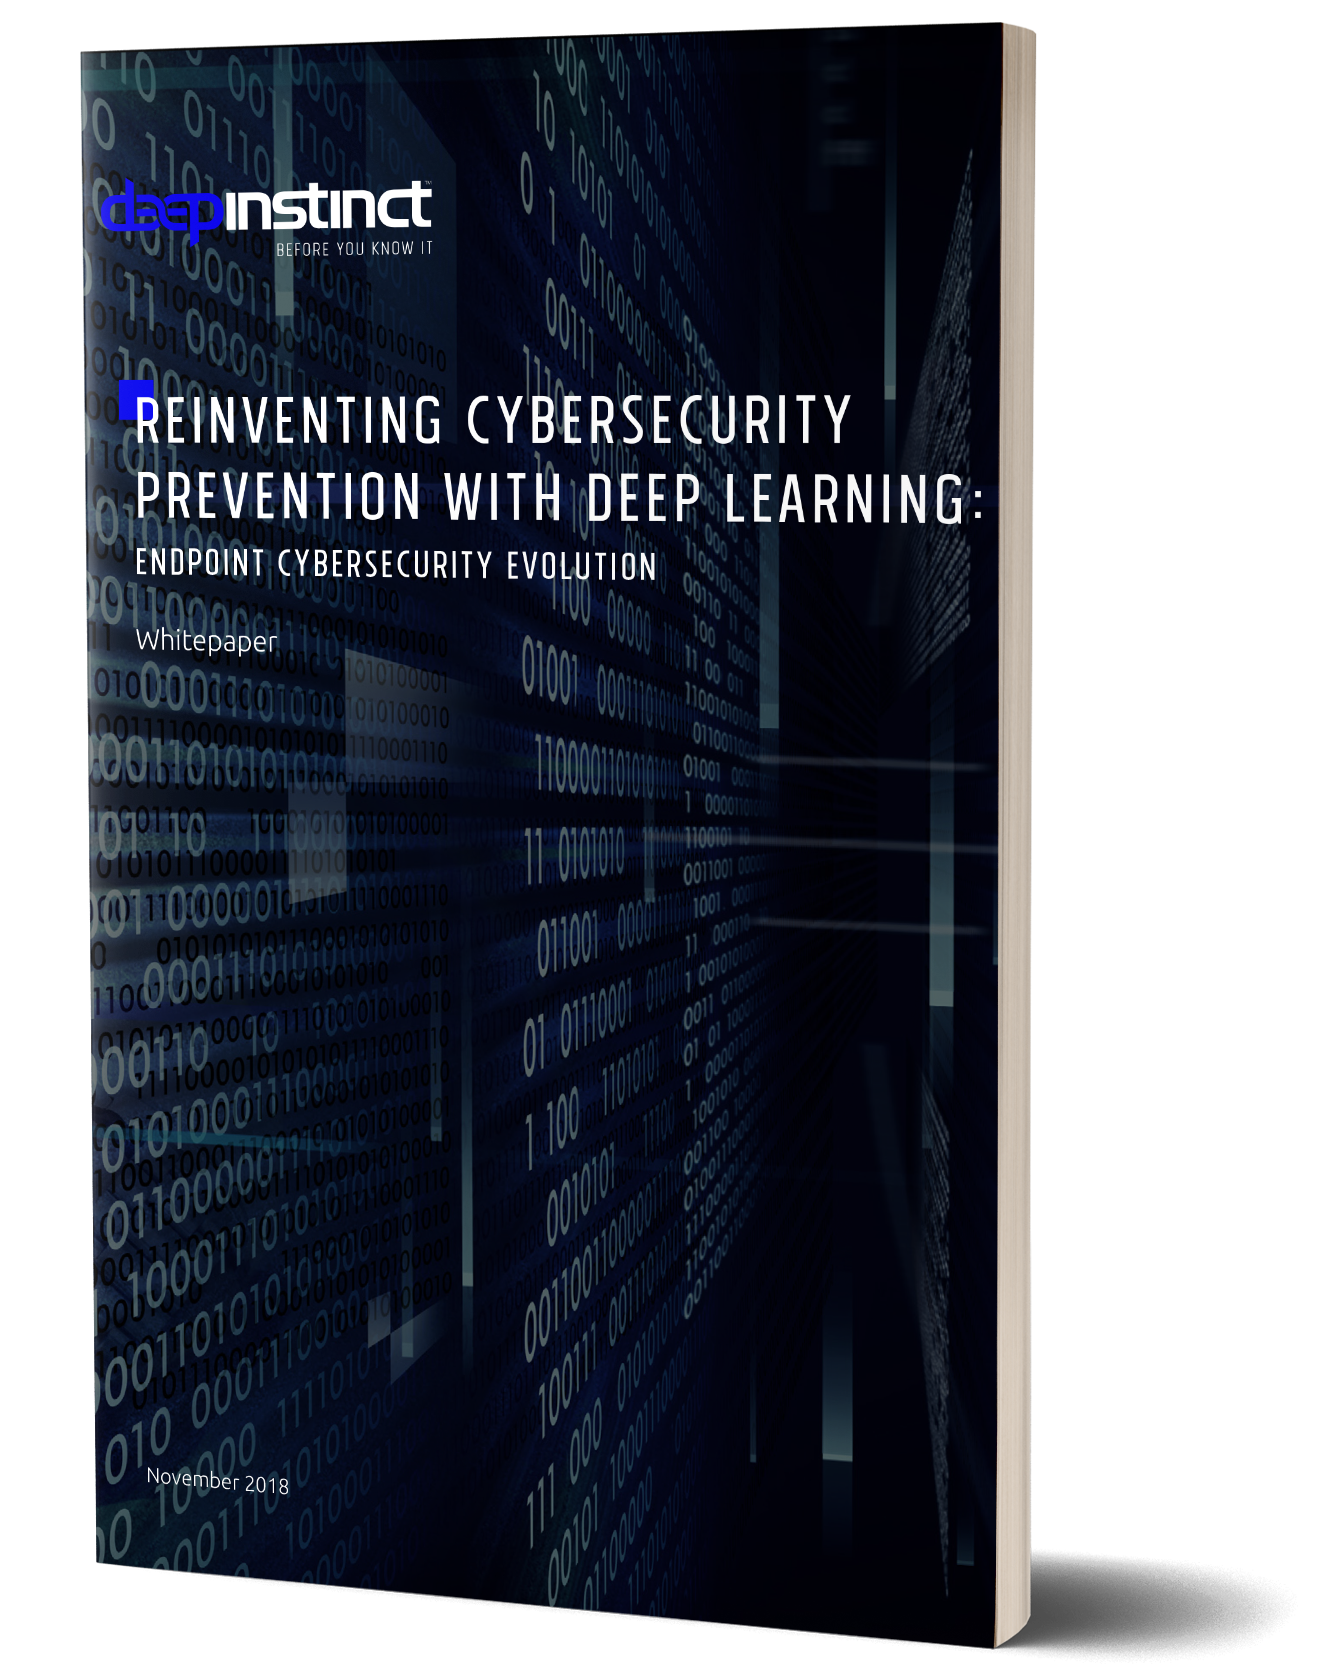 Reinventing Cybersecurity Prevention with Deep Learning book cover